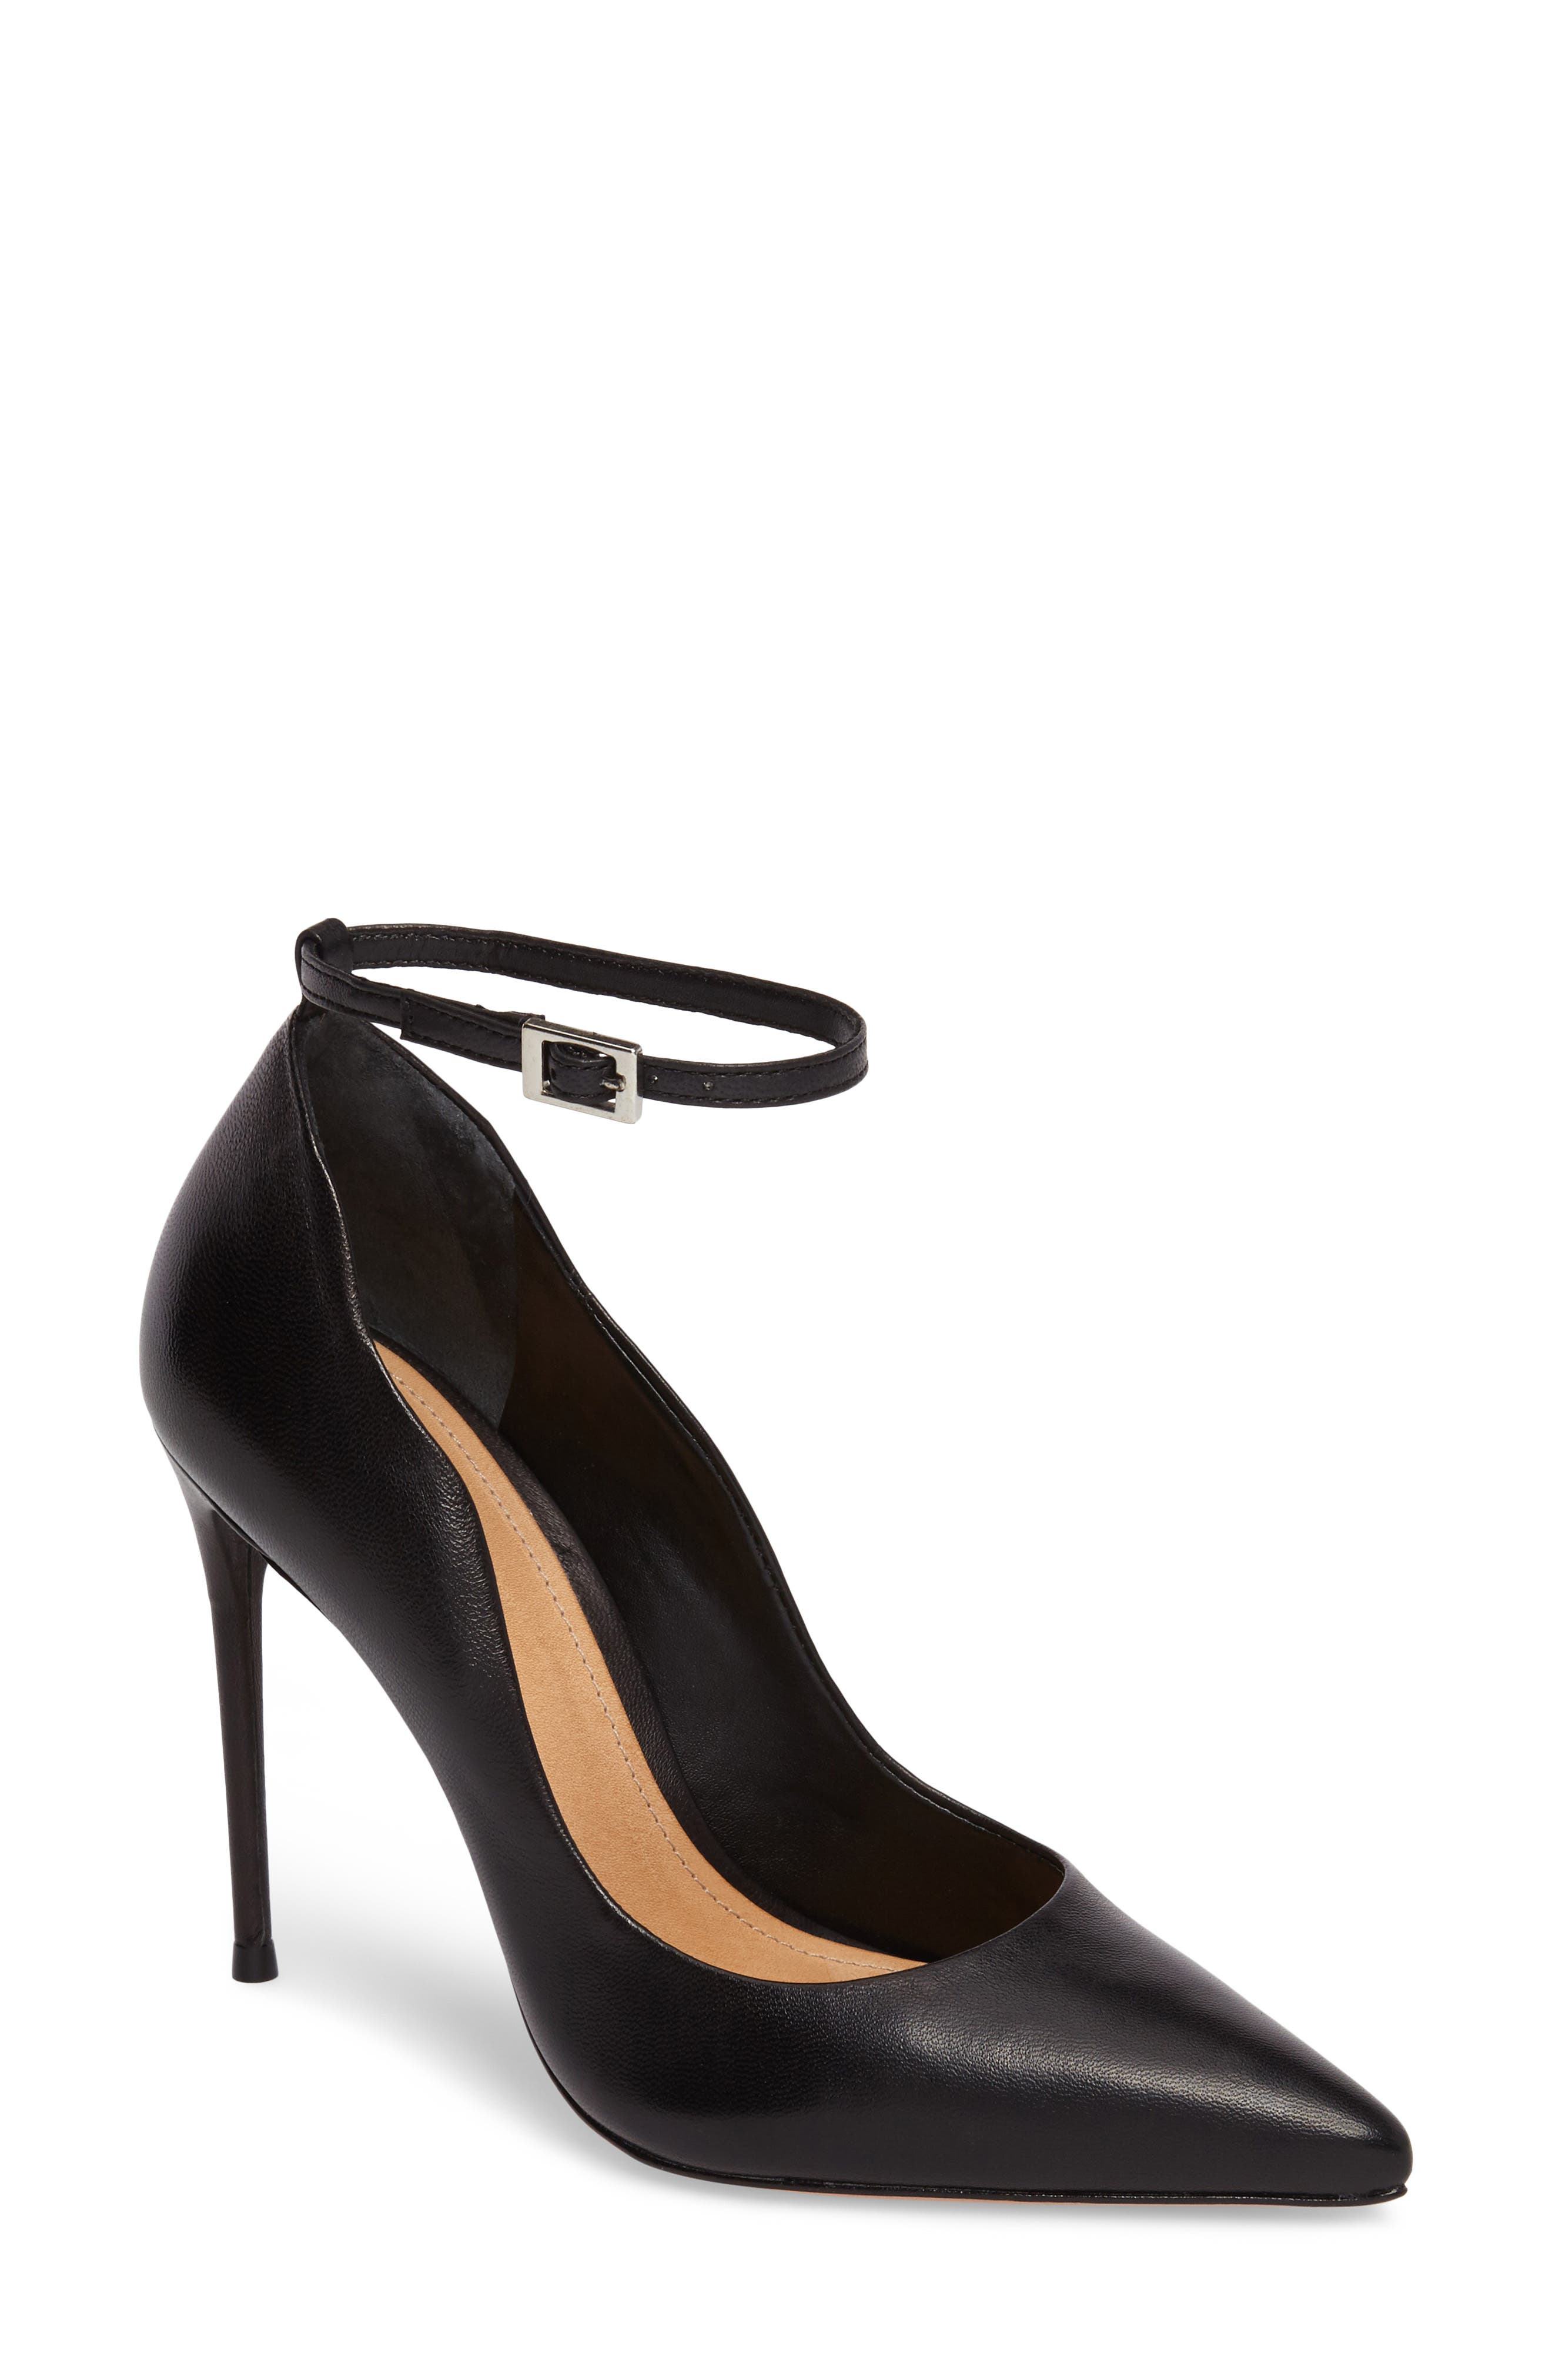 Thaynara Ankle Strap Pump,                             Main thumbnail 1, color,                             001